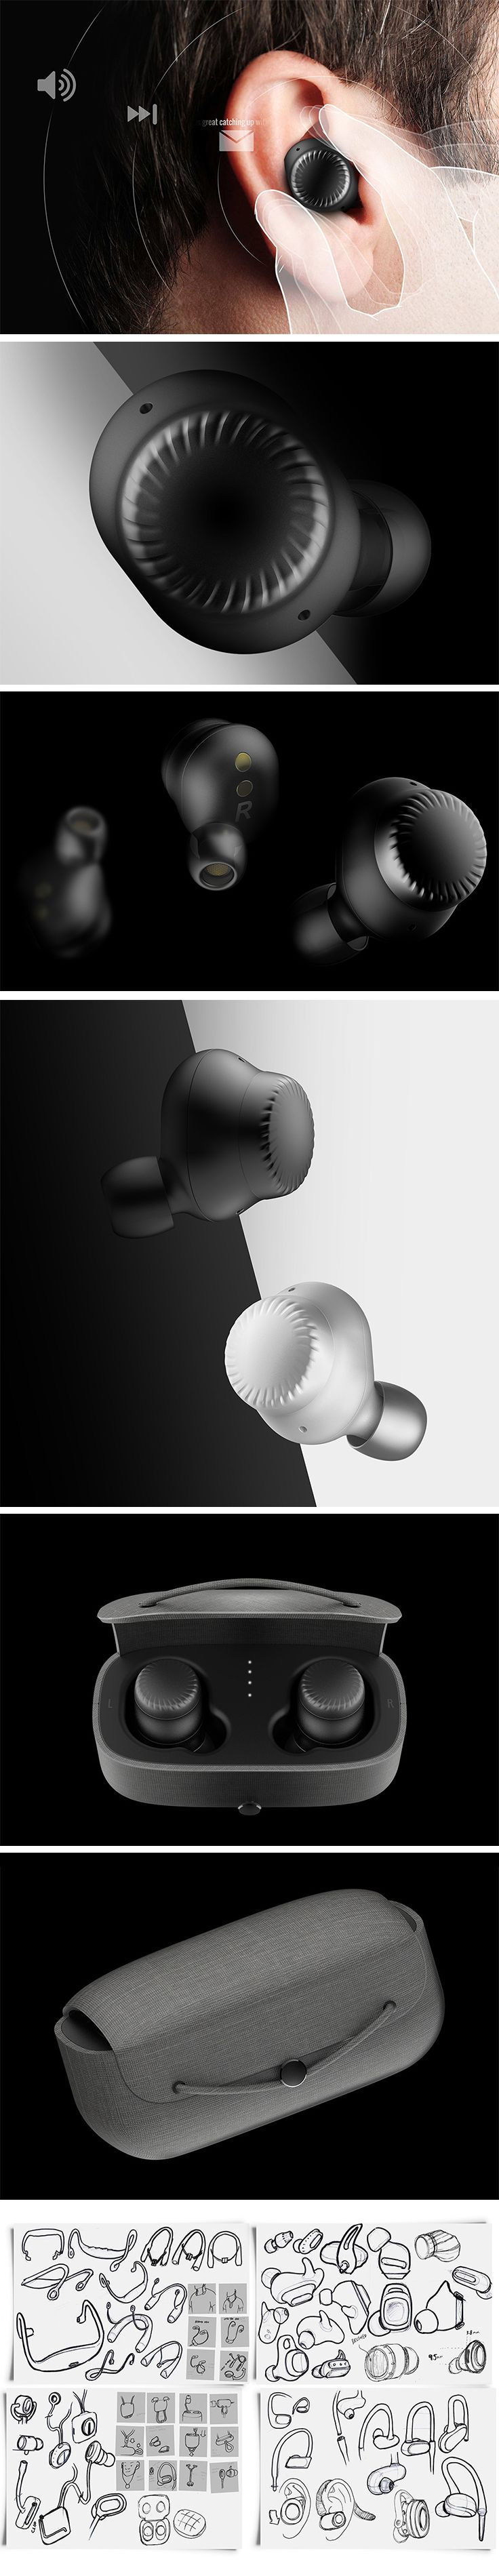 According to designer Thomas Le, wireless earbuds just aren't quite there yet. The touch controls can be difficult and tedious to navigate or, even worse, tend to dislodge them from the ears altogether! The fix? A spinning dial instead of buttons and touch surfaces. This micro-size rotating dial allows the wearer to quickly and accurately adjust volume, cycle through songs, or even fast forward through music or emails being read.